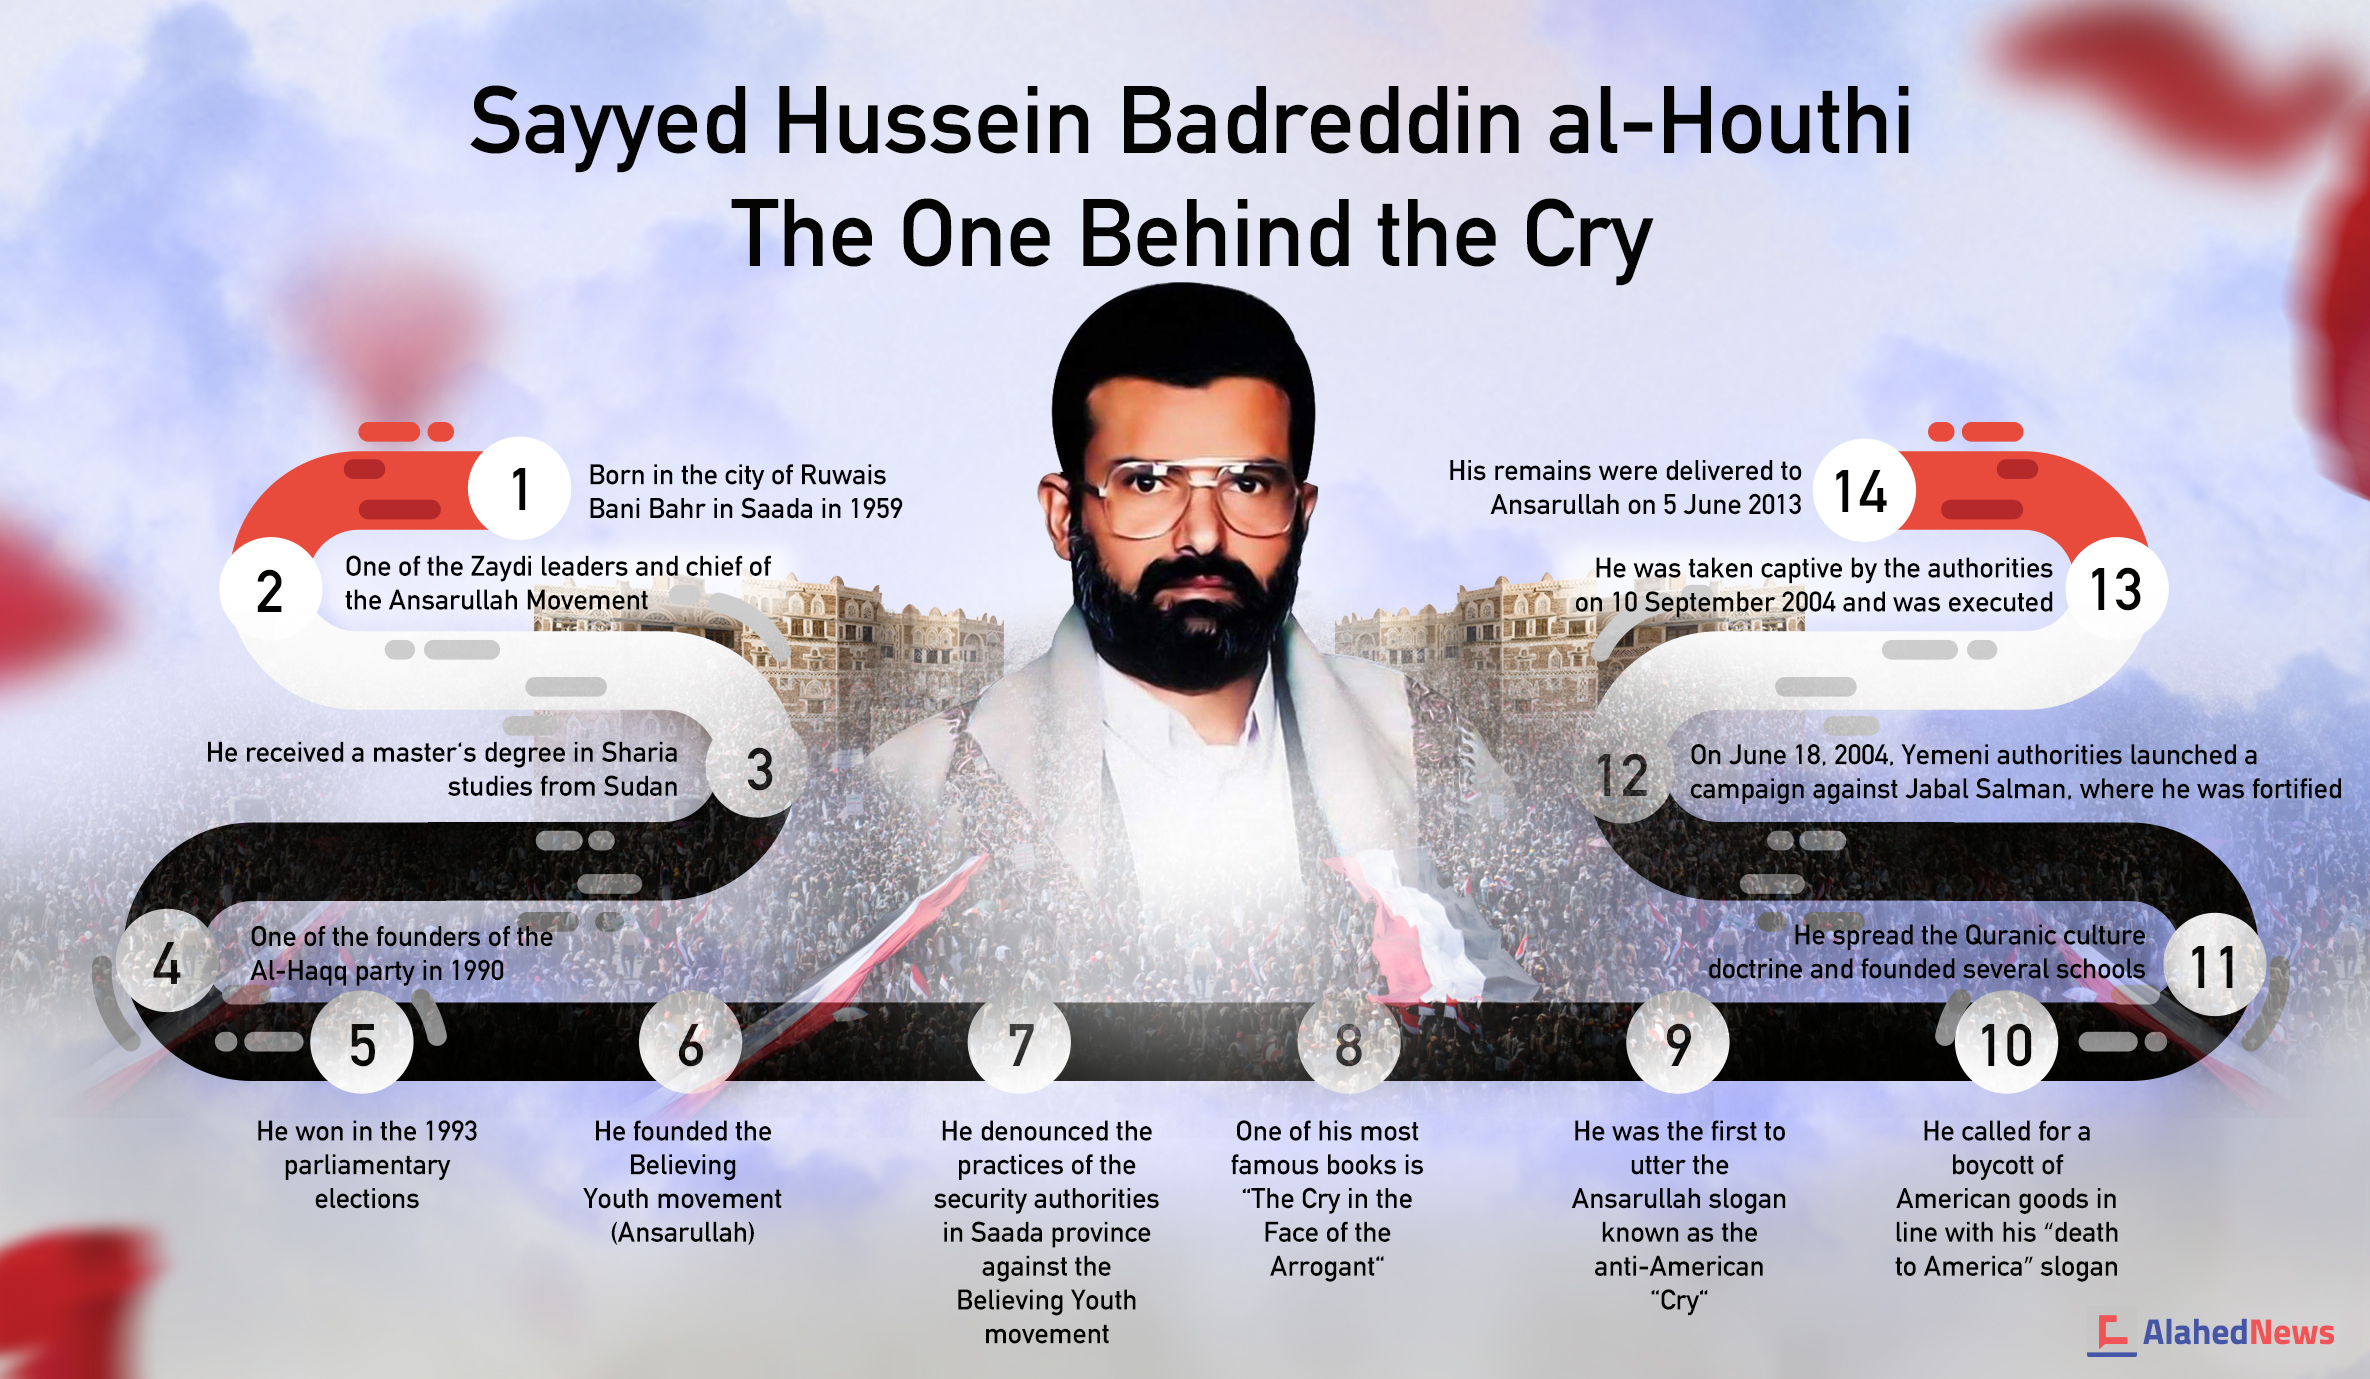 Sayyed Hussein Badreddin al-Houthi: The One behind the Cry (al-Sarkha)